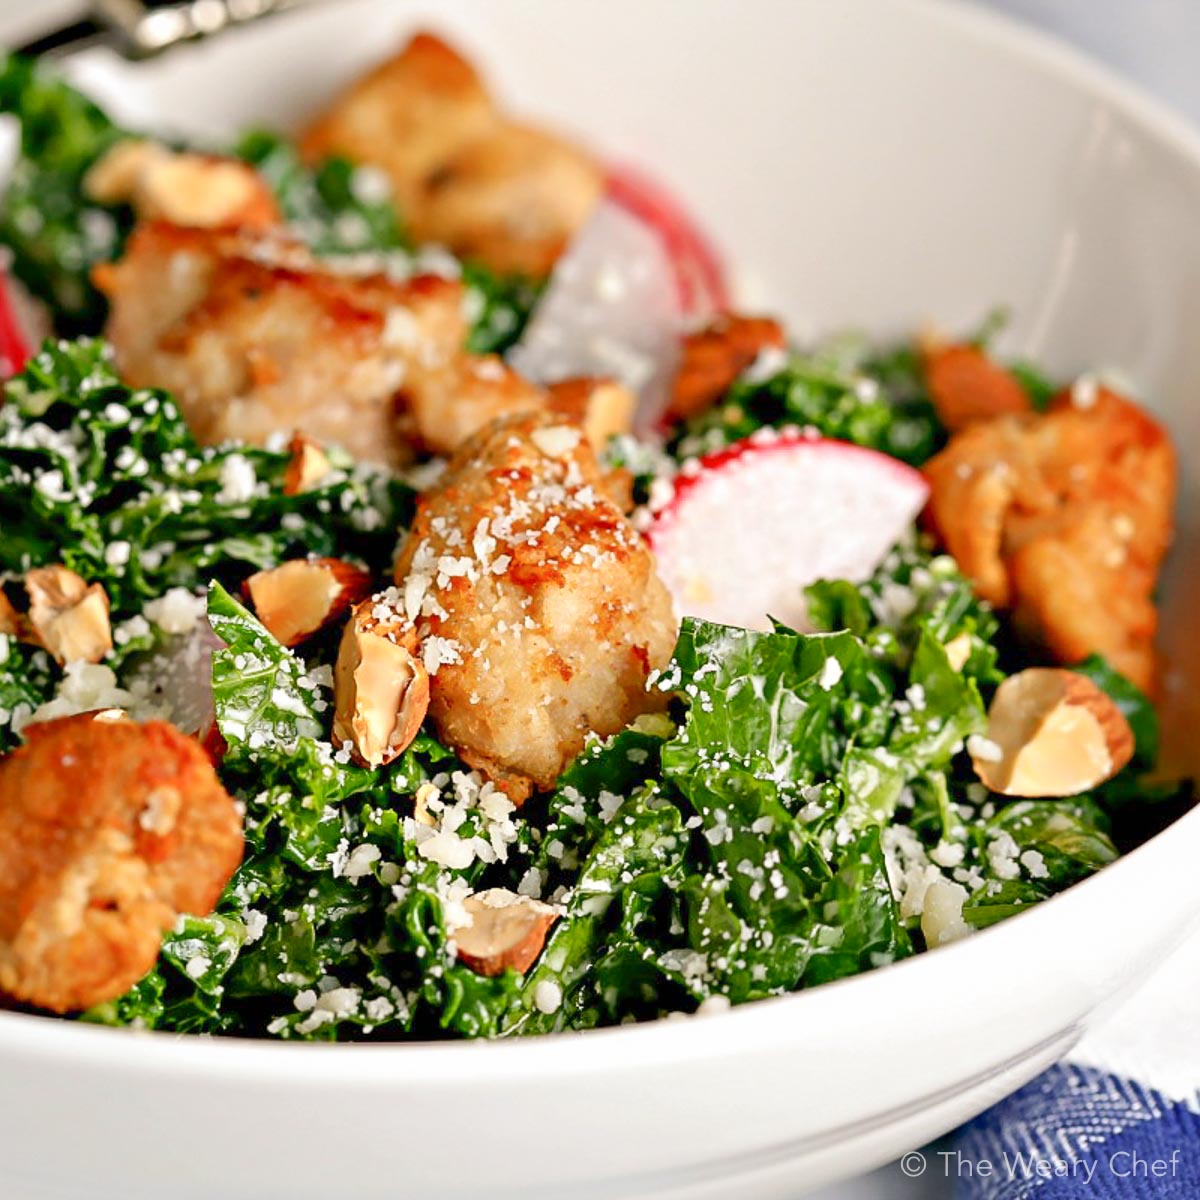 Chicken Caesar Salad with kale is lightened up with a reduced-fat caesar dressing. Great weeknight dinner!